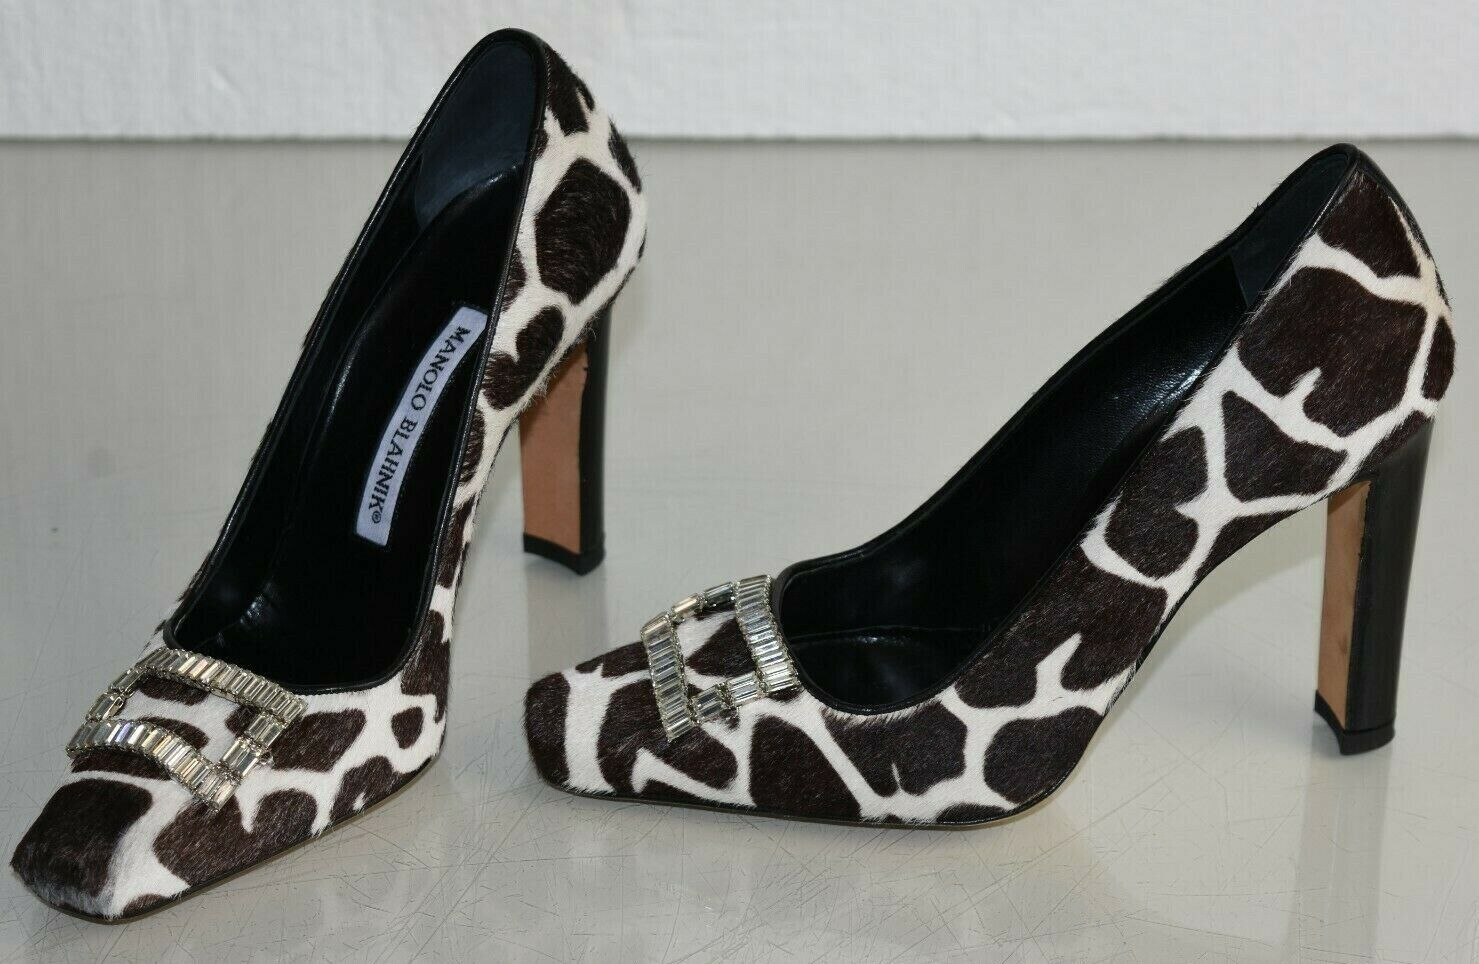 745 NEW Manolo Blahnik ASTOCHA Pony Pumps Brown Black CRYSTAL Buckle shoes 35.5